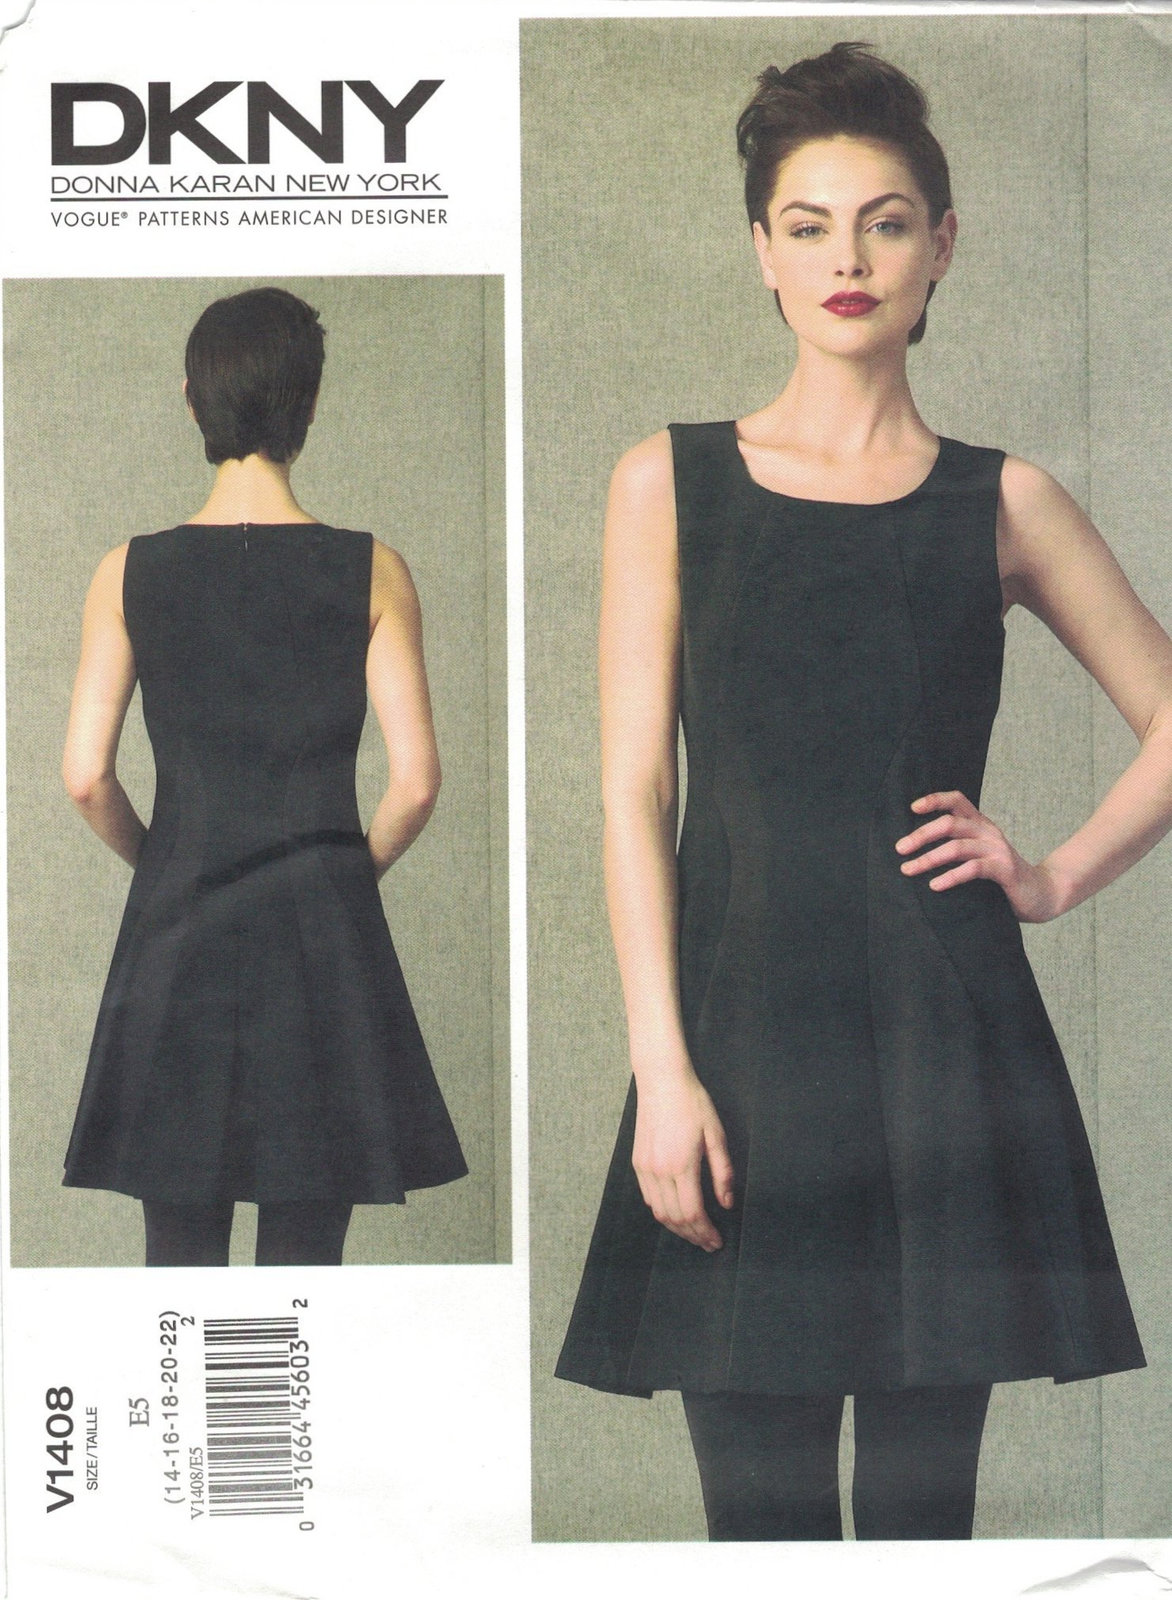 Primary image for Vogue 1408 DKNY Donna Karan Sleeveless Knit Dress Pattern Size 14 16 18 20 22 UC